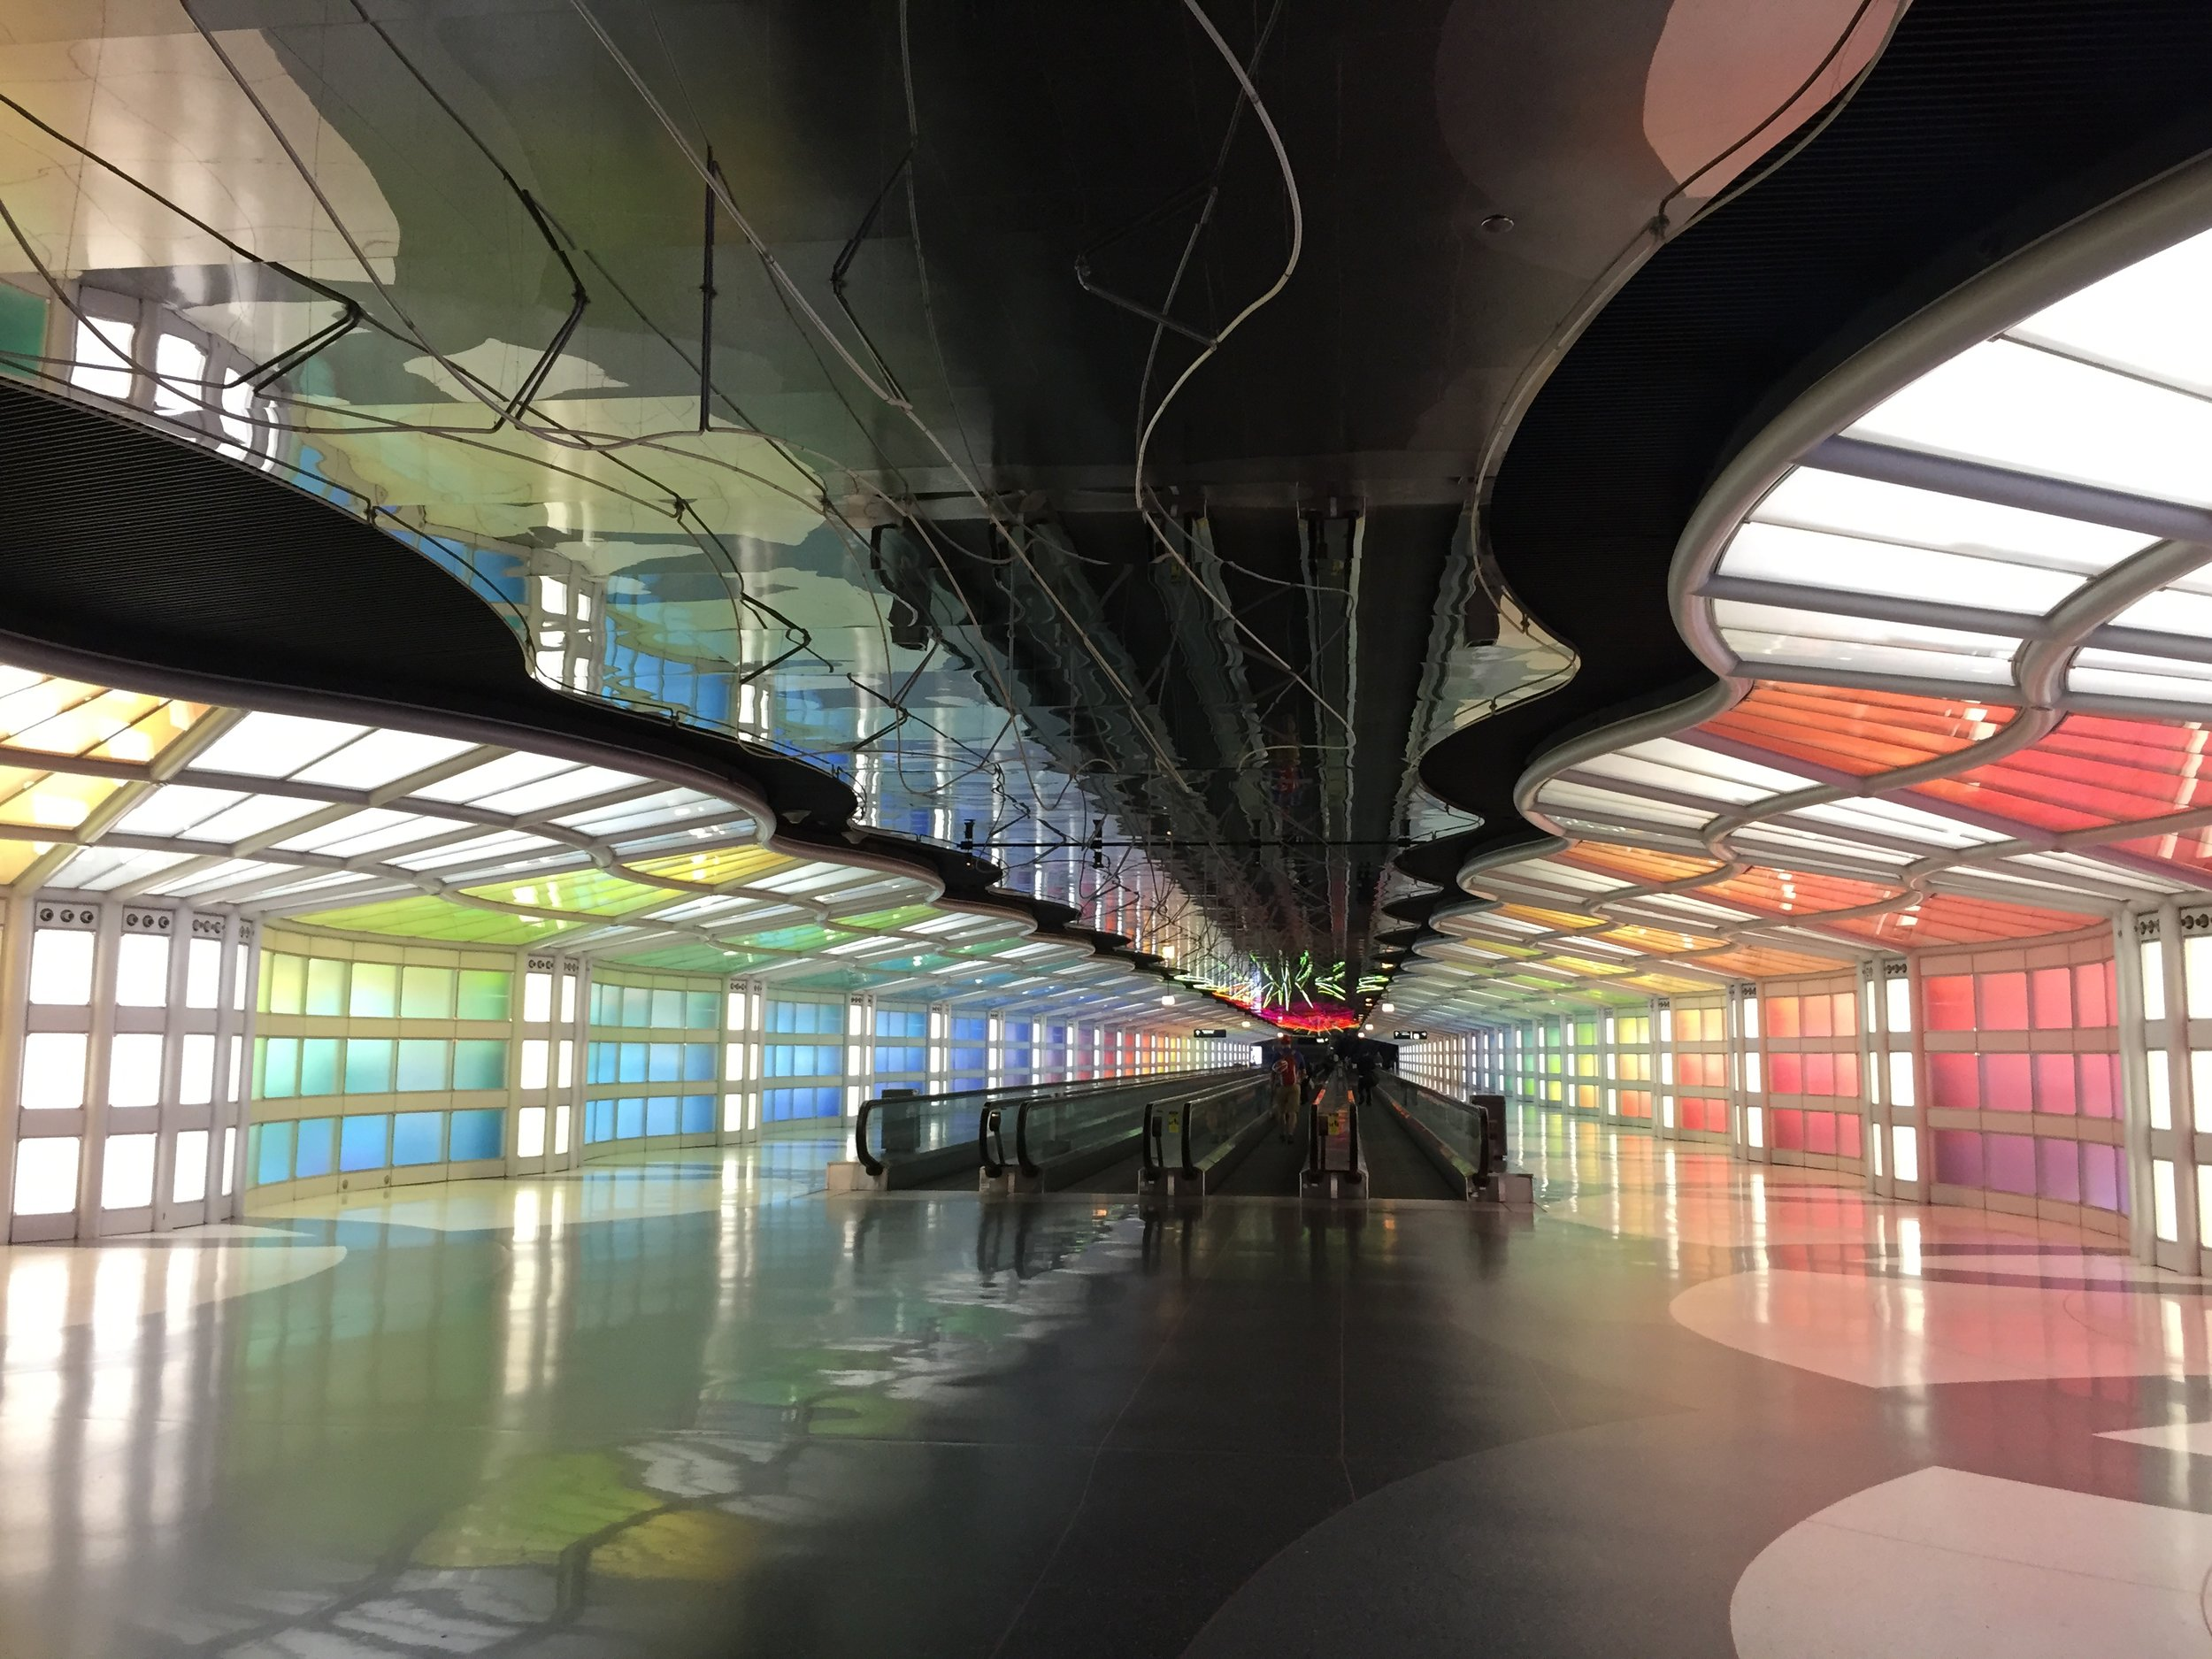 Connections in O'Hare